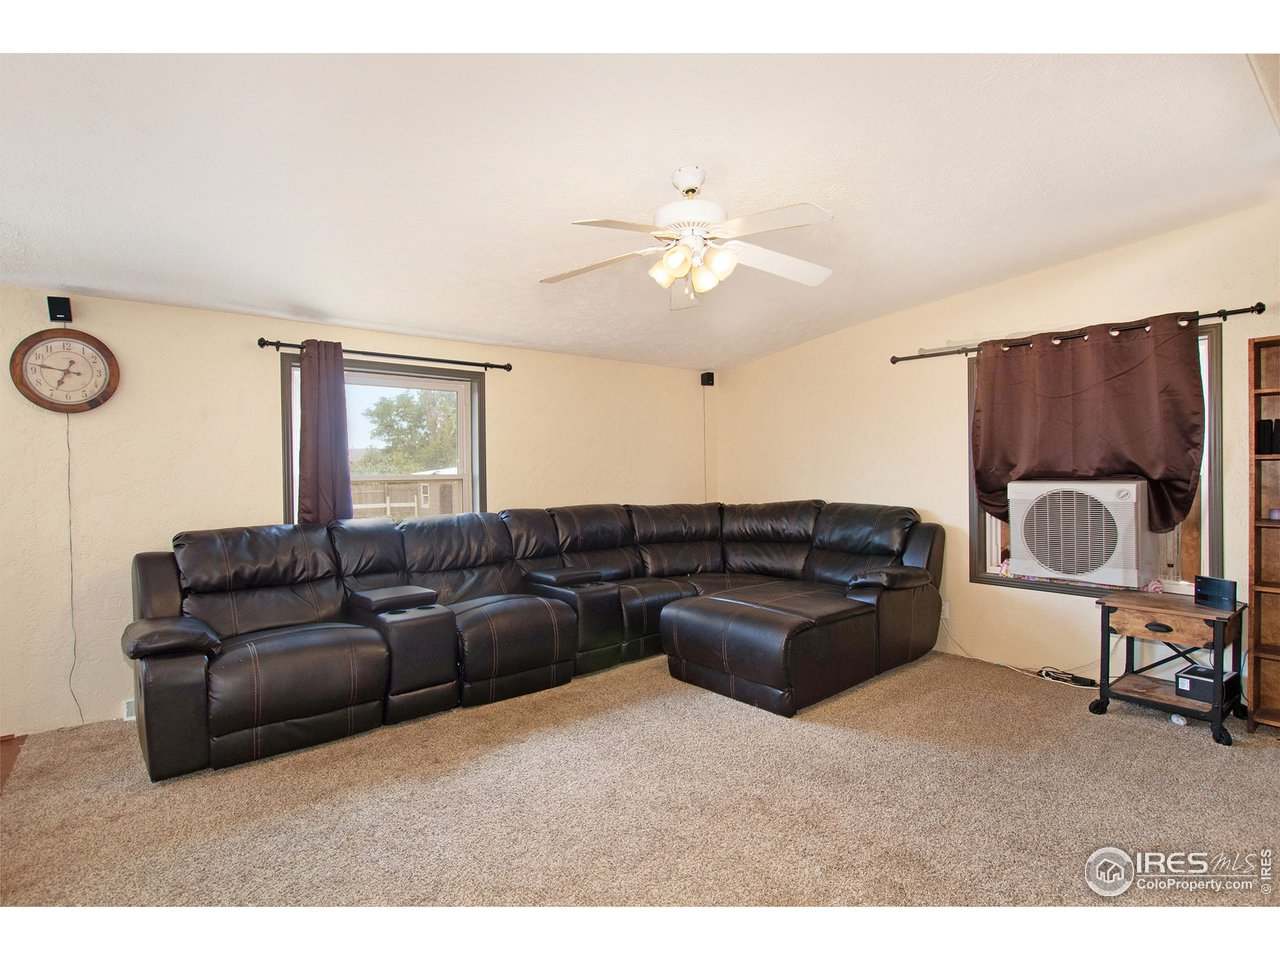 Enough Room for Large Furniture